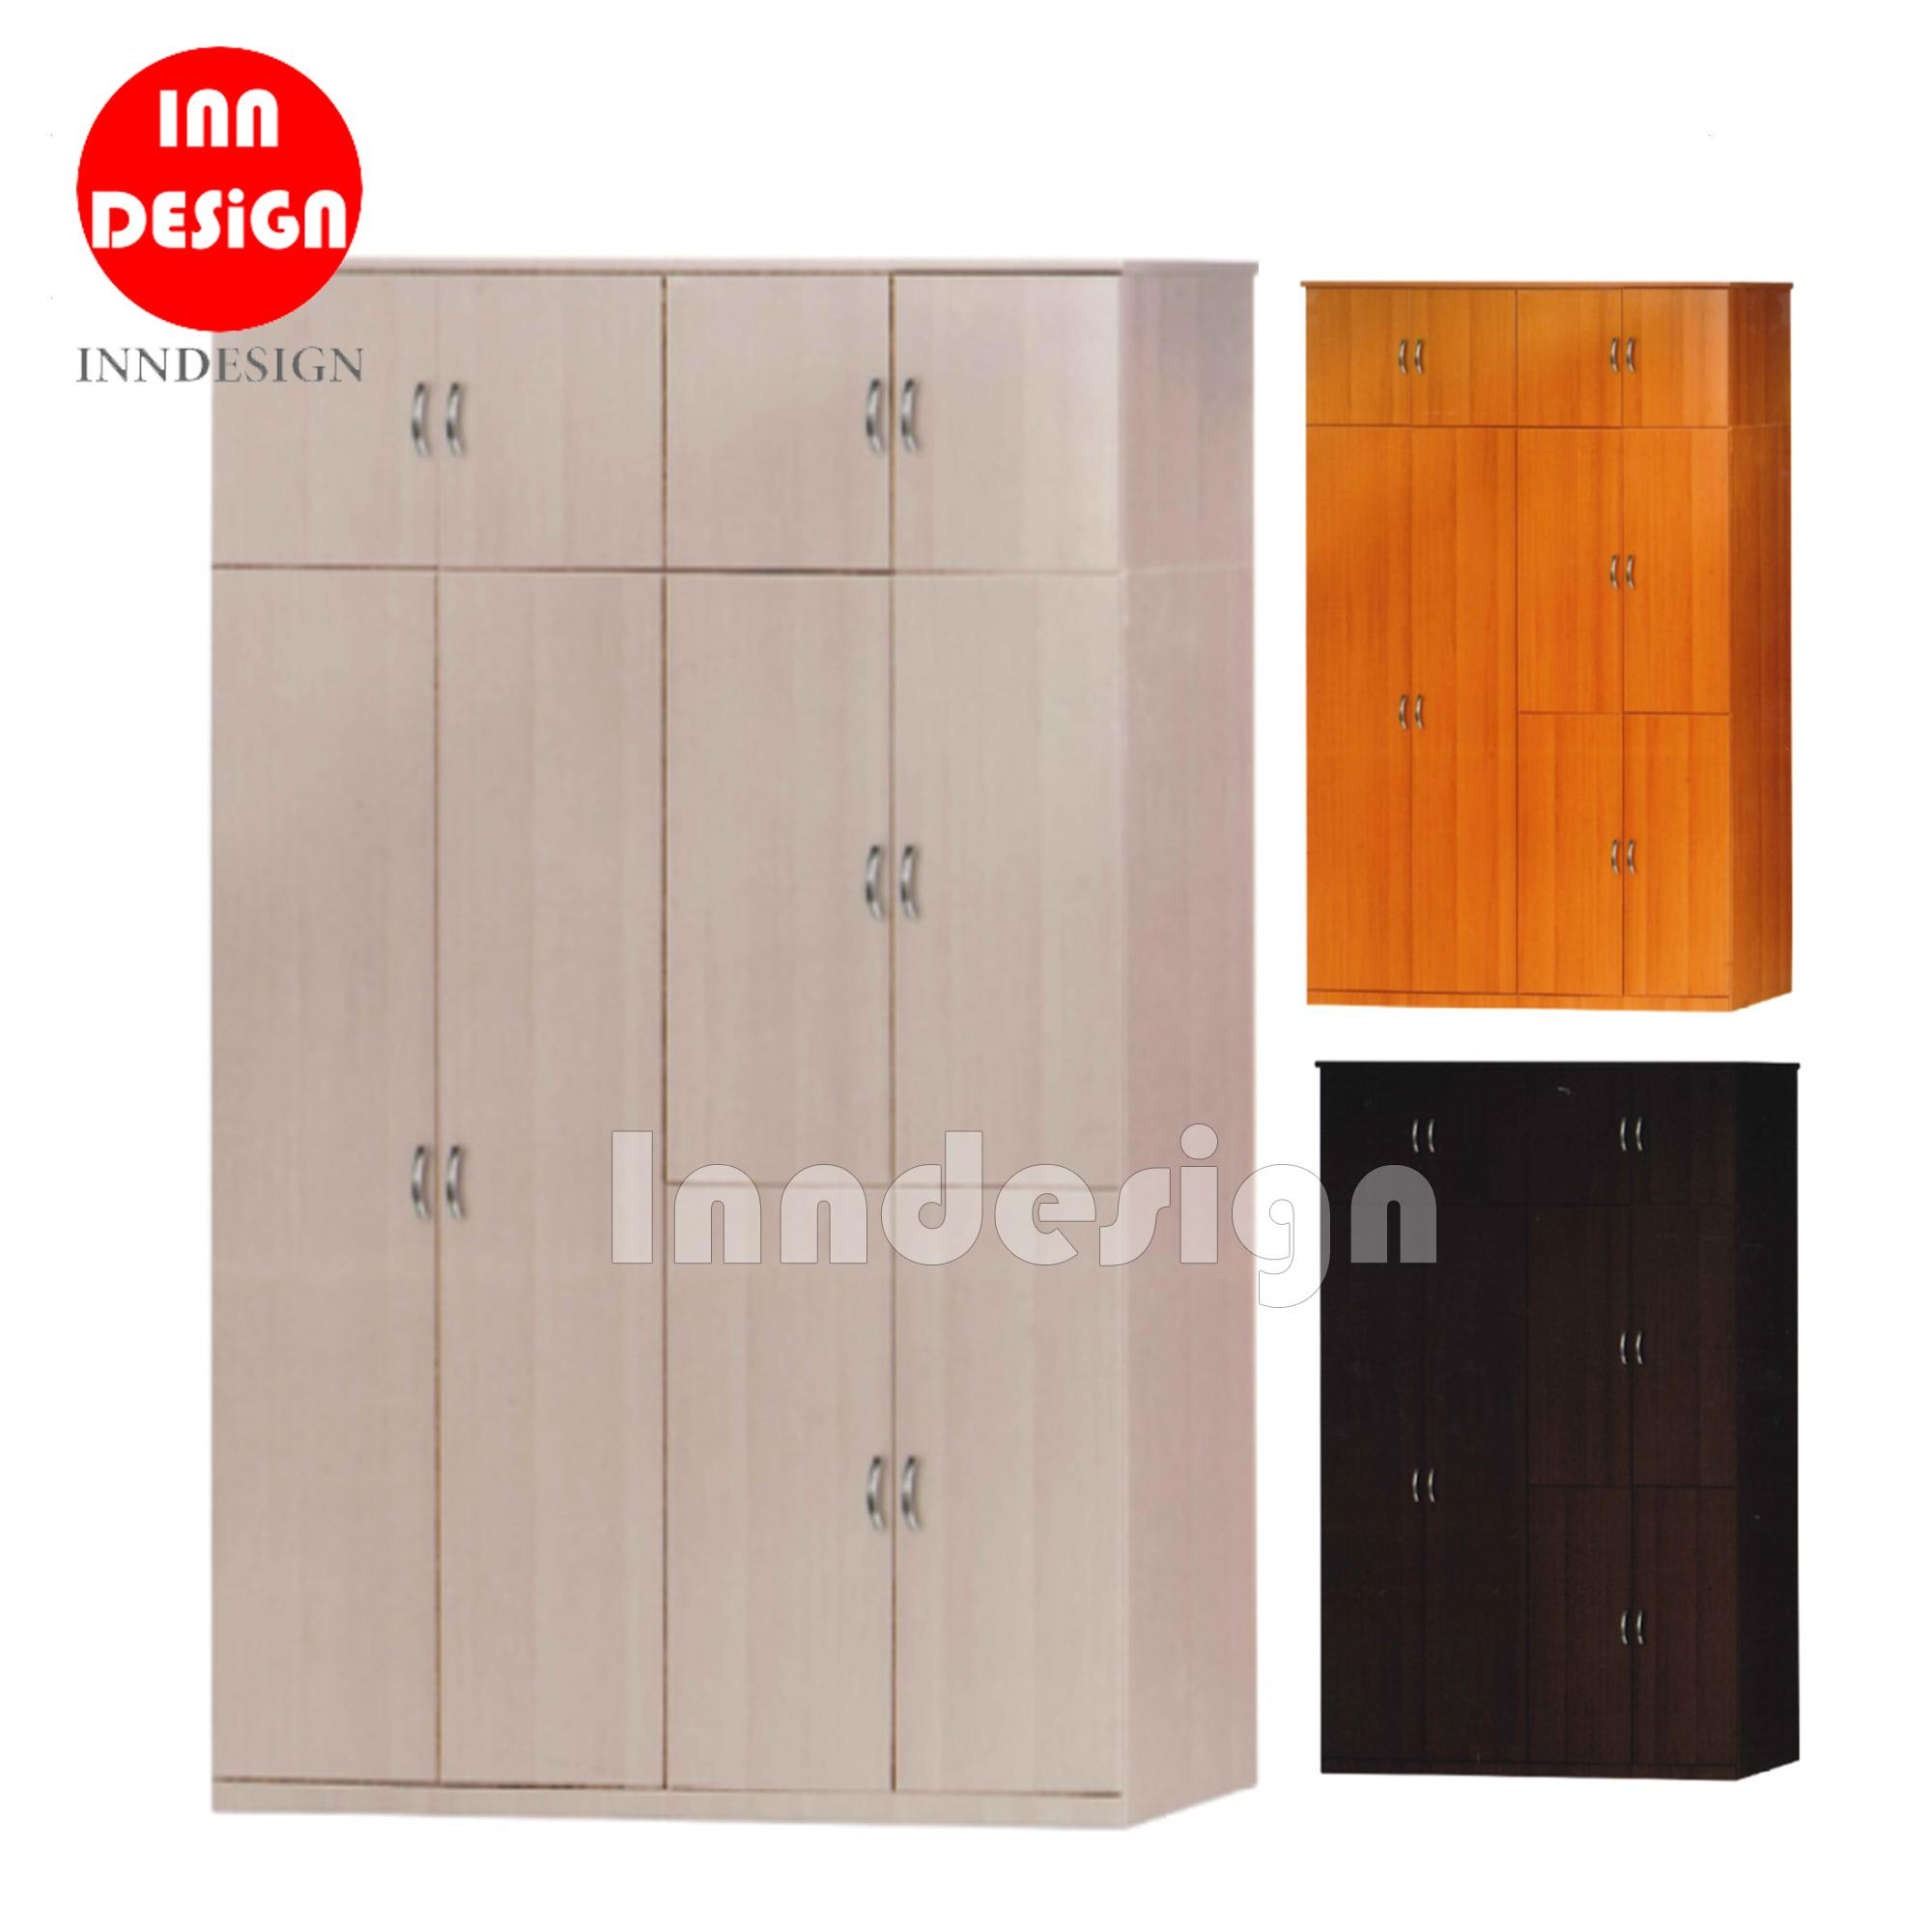 EIFEL 10 DOORS WARDROBE / OPEN WARDROBE (Free Delivery and Installation)